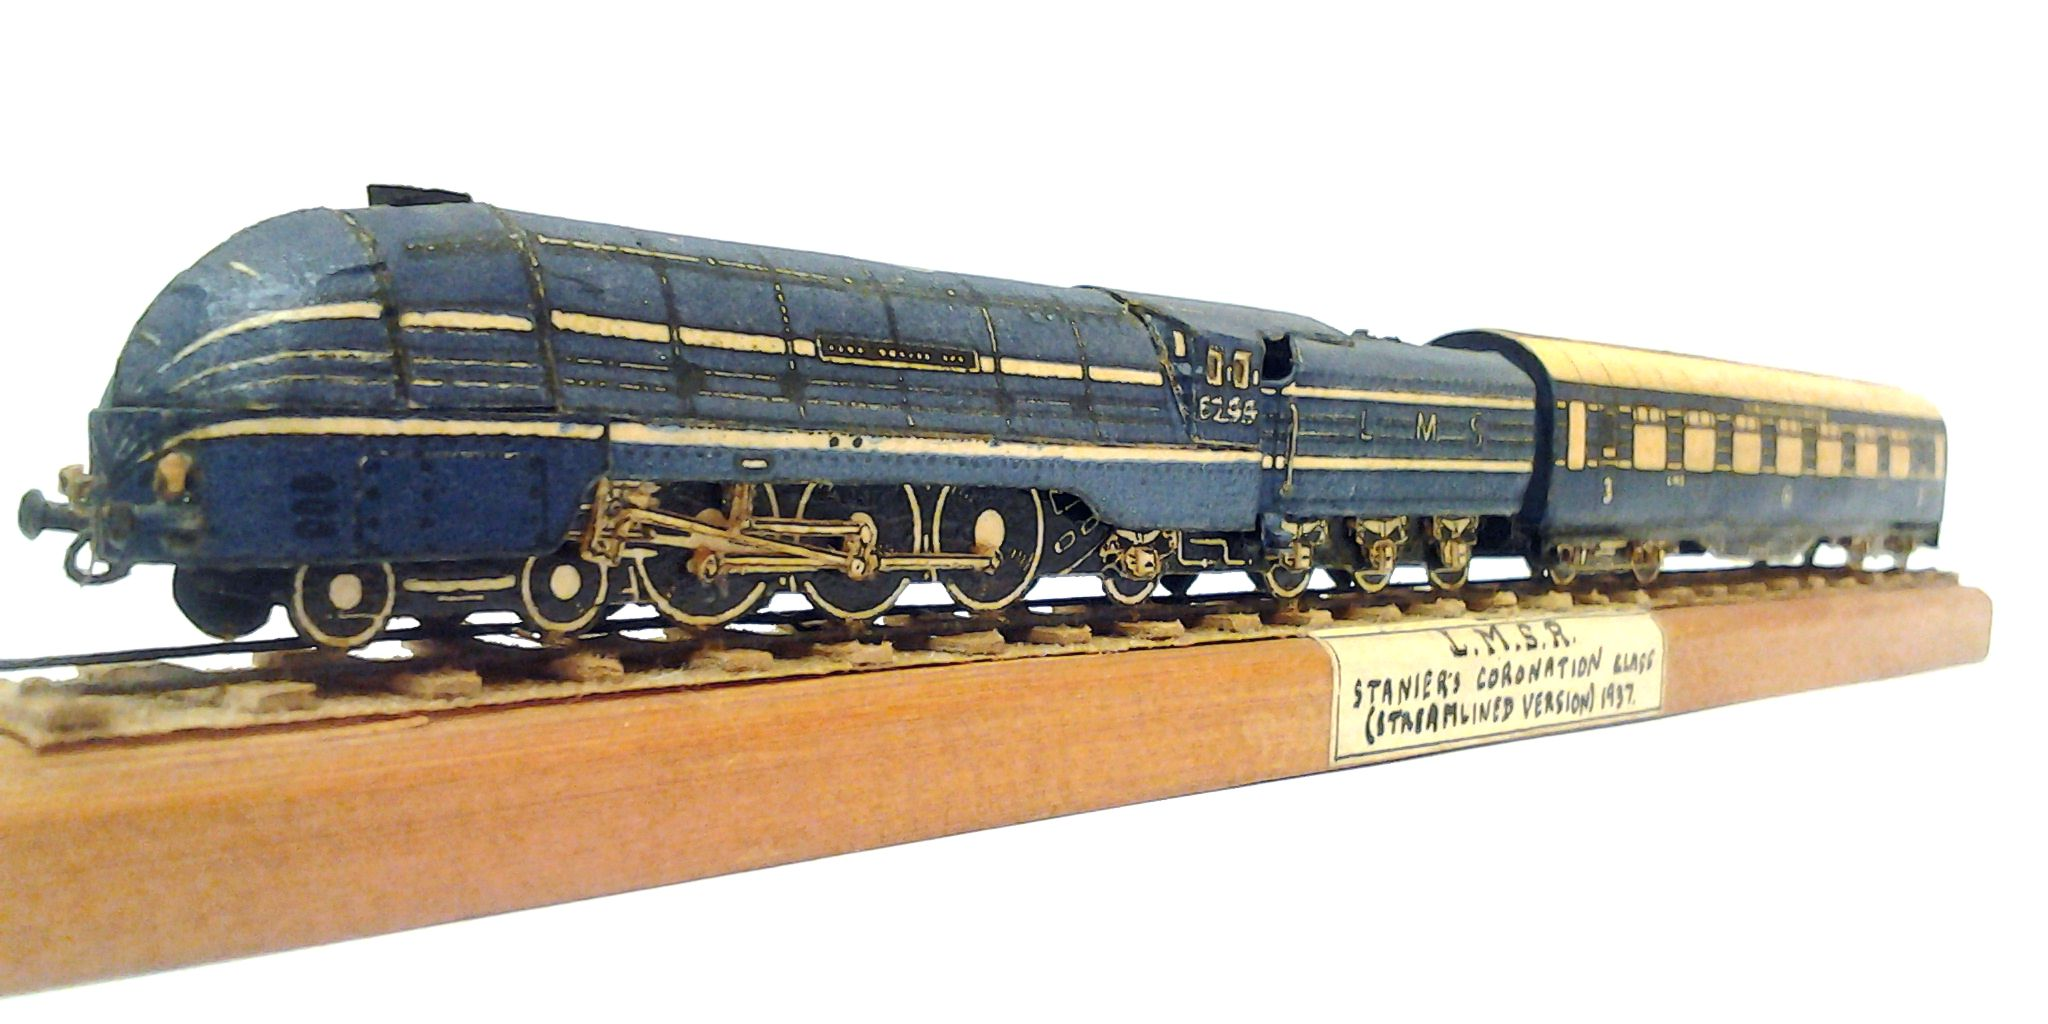 List of synonyms and antonyms of the word model locomotives for Synonym modell